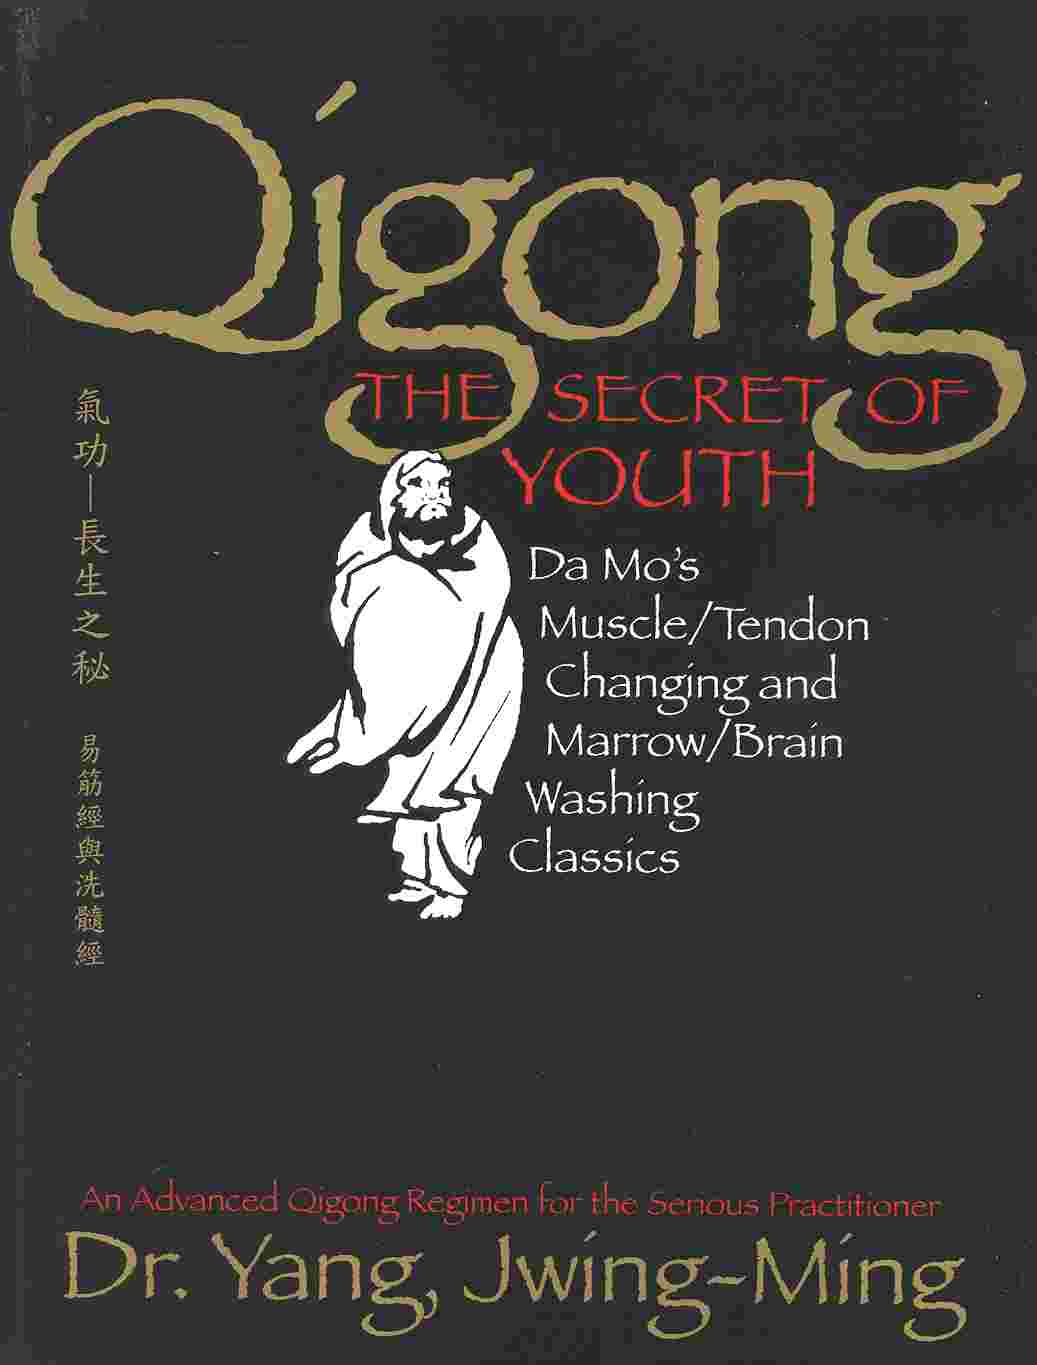 Qigong, the Secret of Youth By Yang, Jwing-Ming